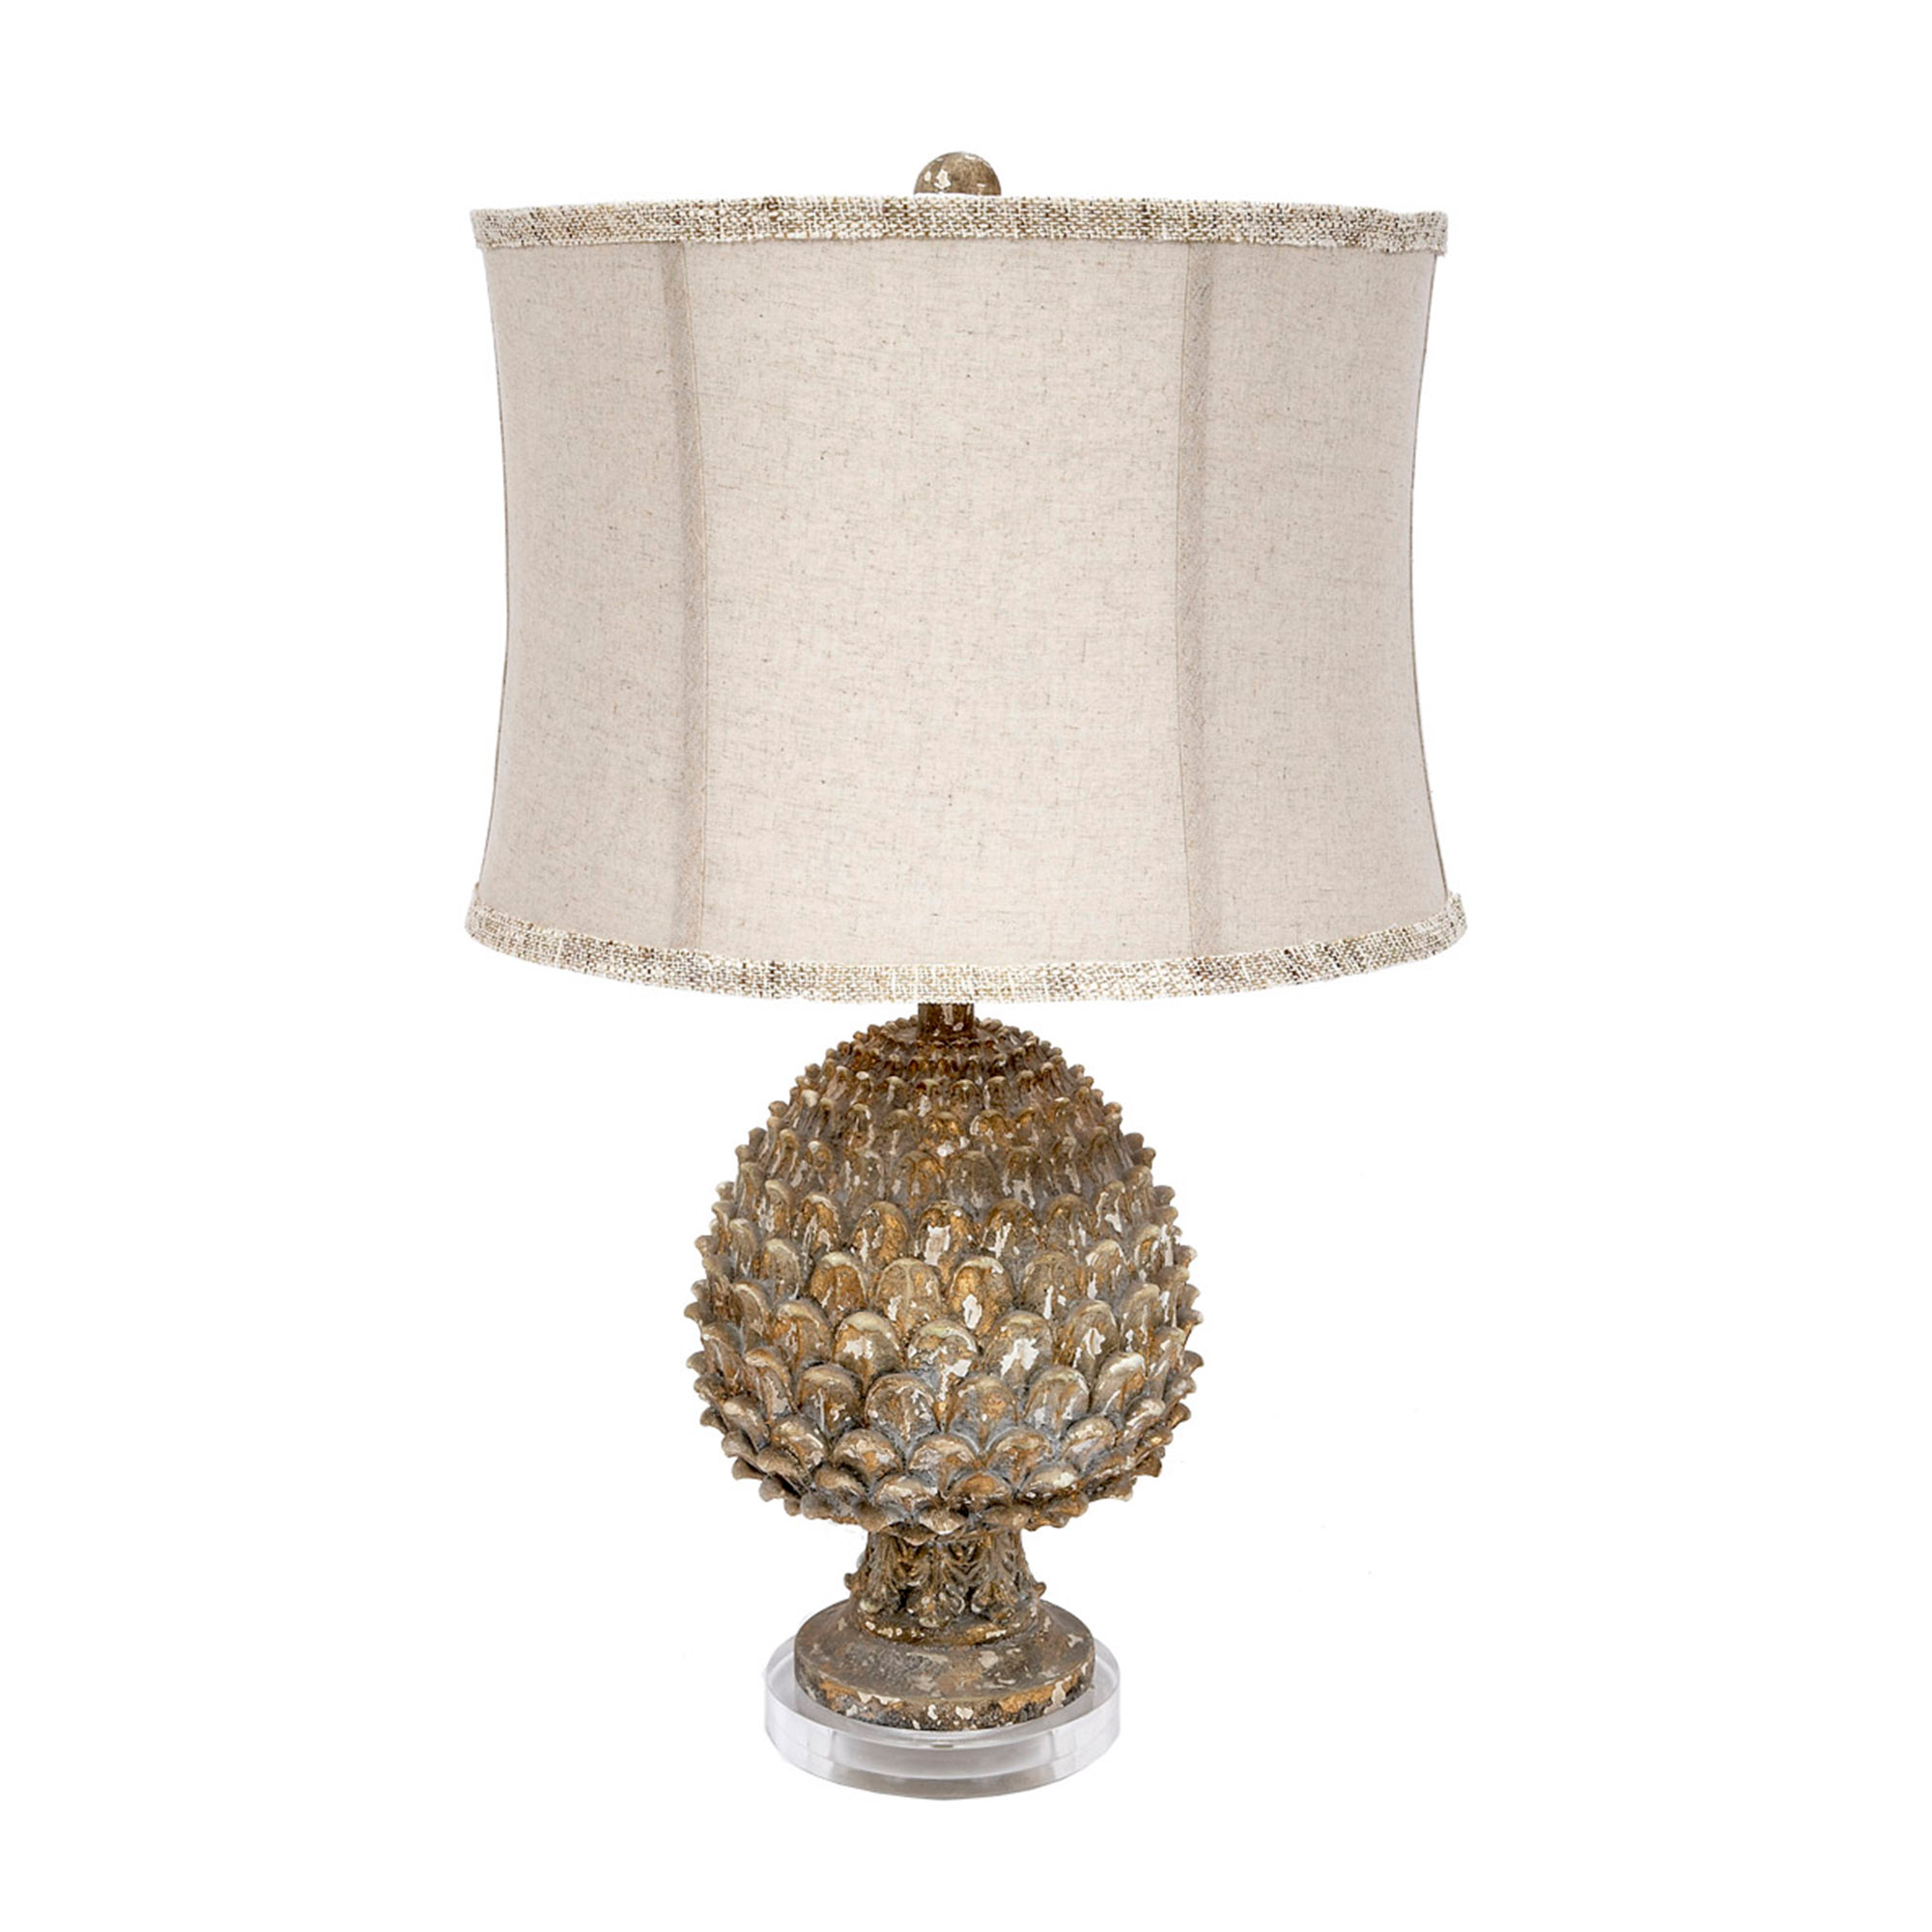 Whitney Aged Pineapple Lamp with Linen Shade